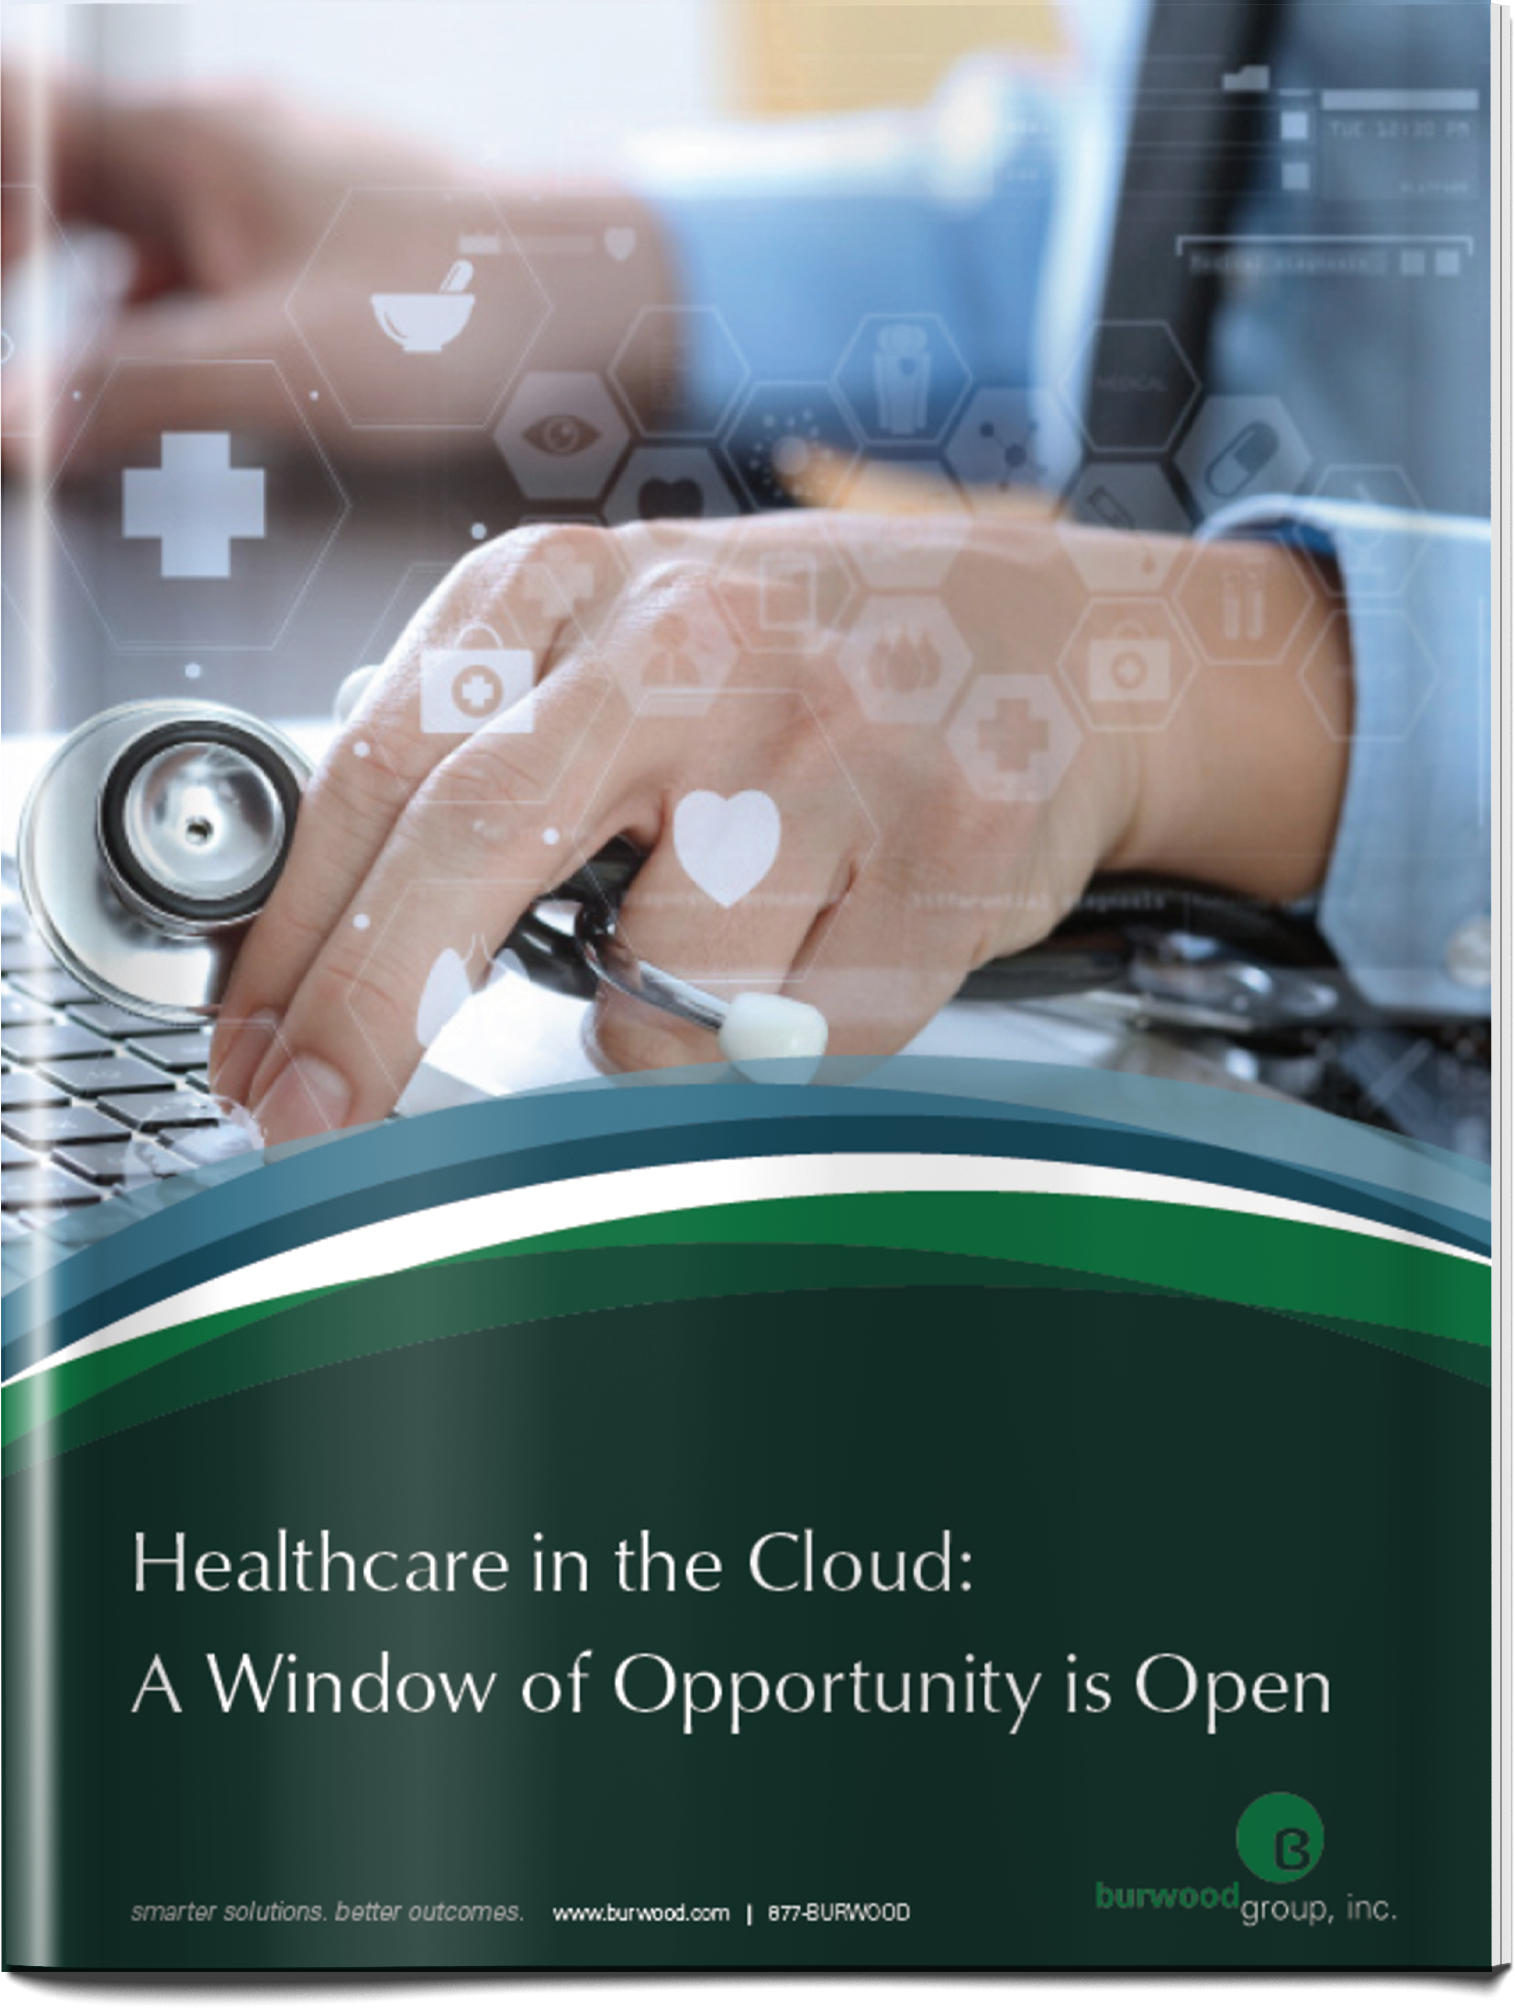 Healthcare in the Cloud: A Window of Opportunity is Open - Burwood's experts predicts critical healthcare IT initiatives that will require cloud applications.Read The Whitepaper